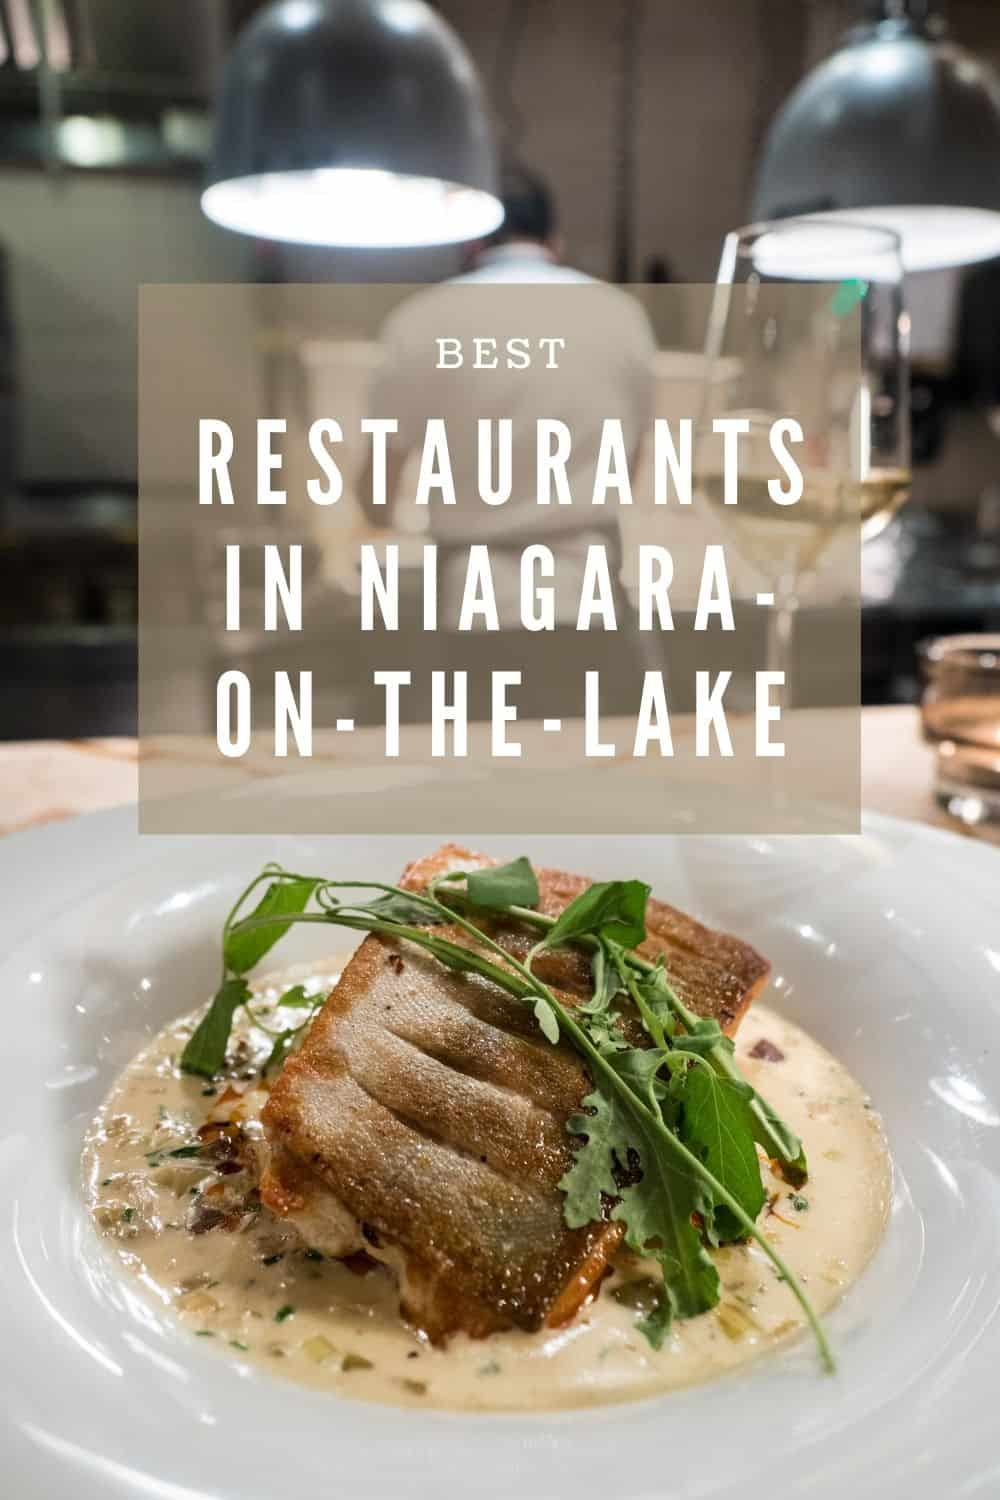 Best Restaurants in Niagara-on-the-Lake